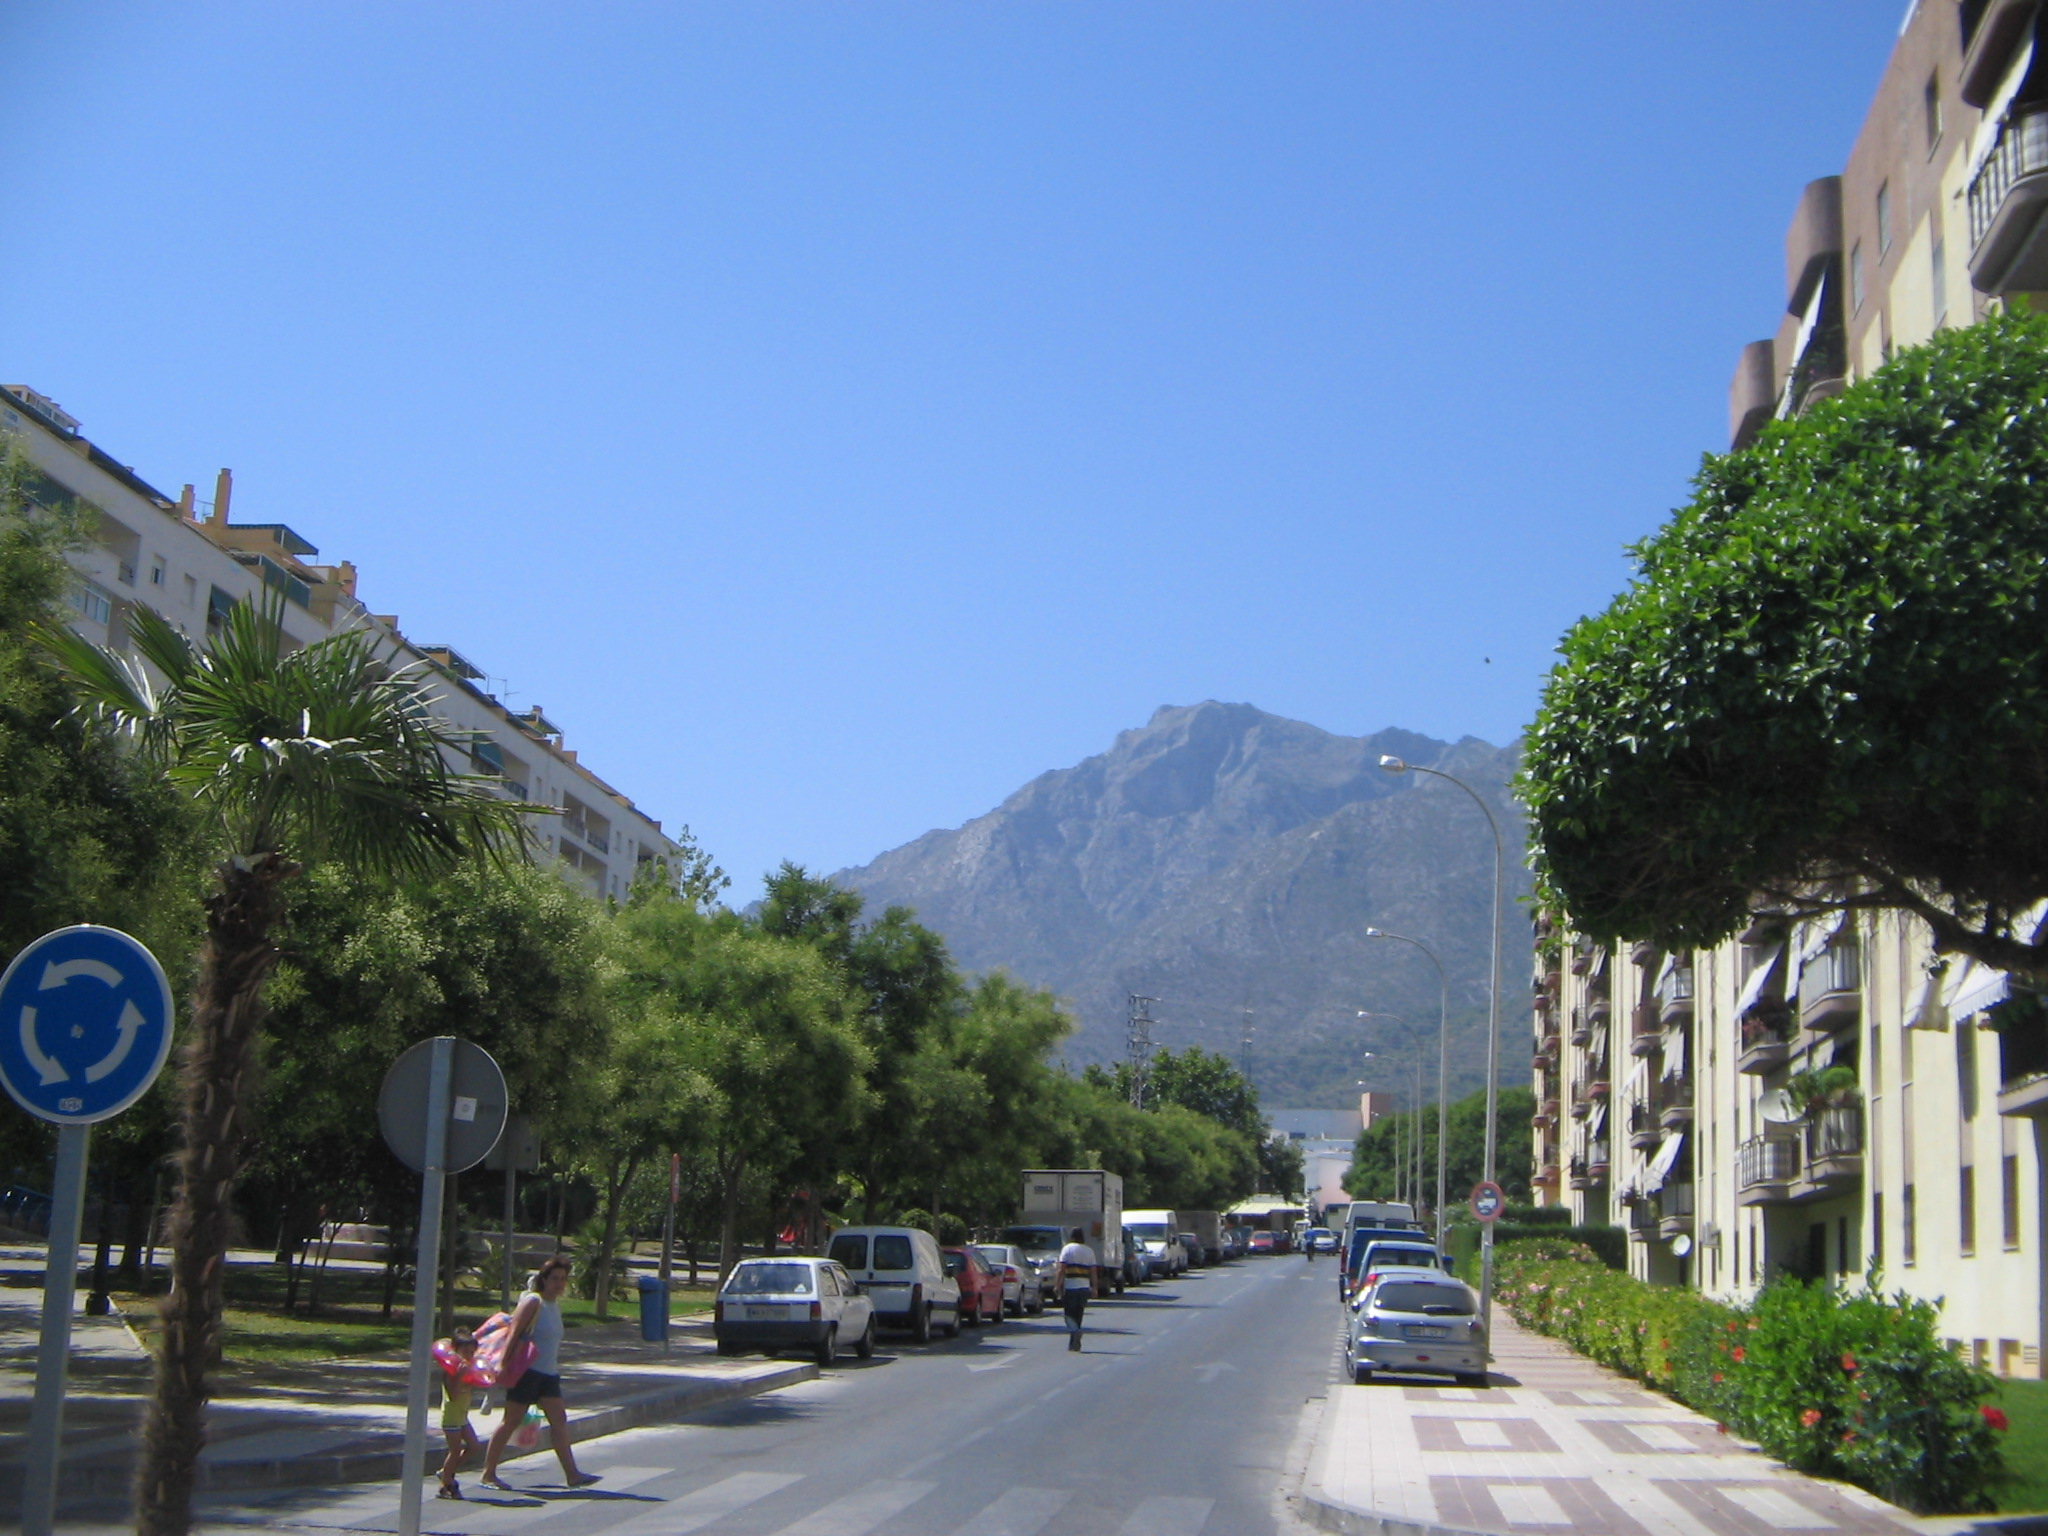 Marbella Spain  City new picture : Street in Marbella, Spain 2005 Wikimedia Commons